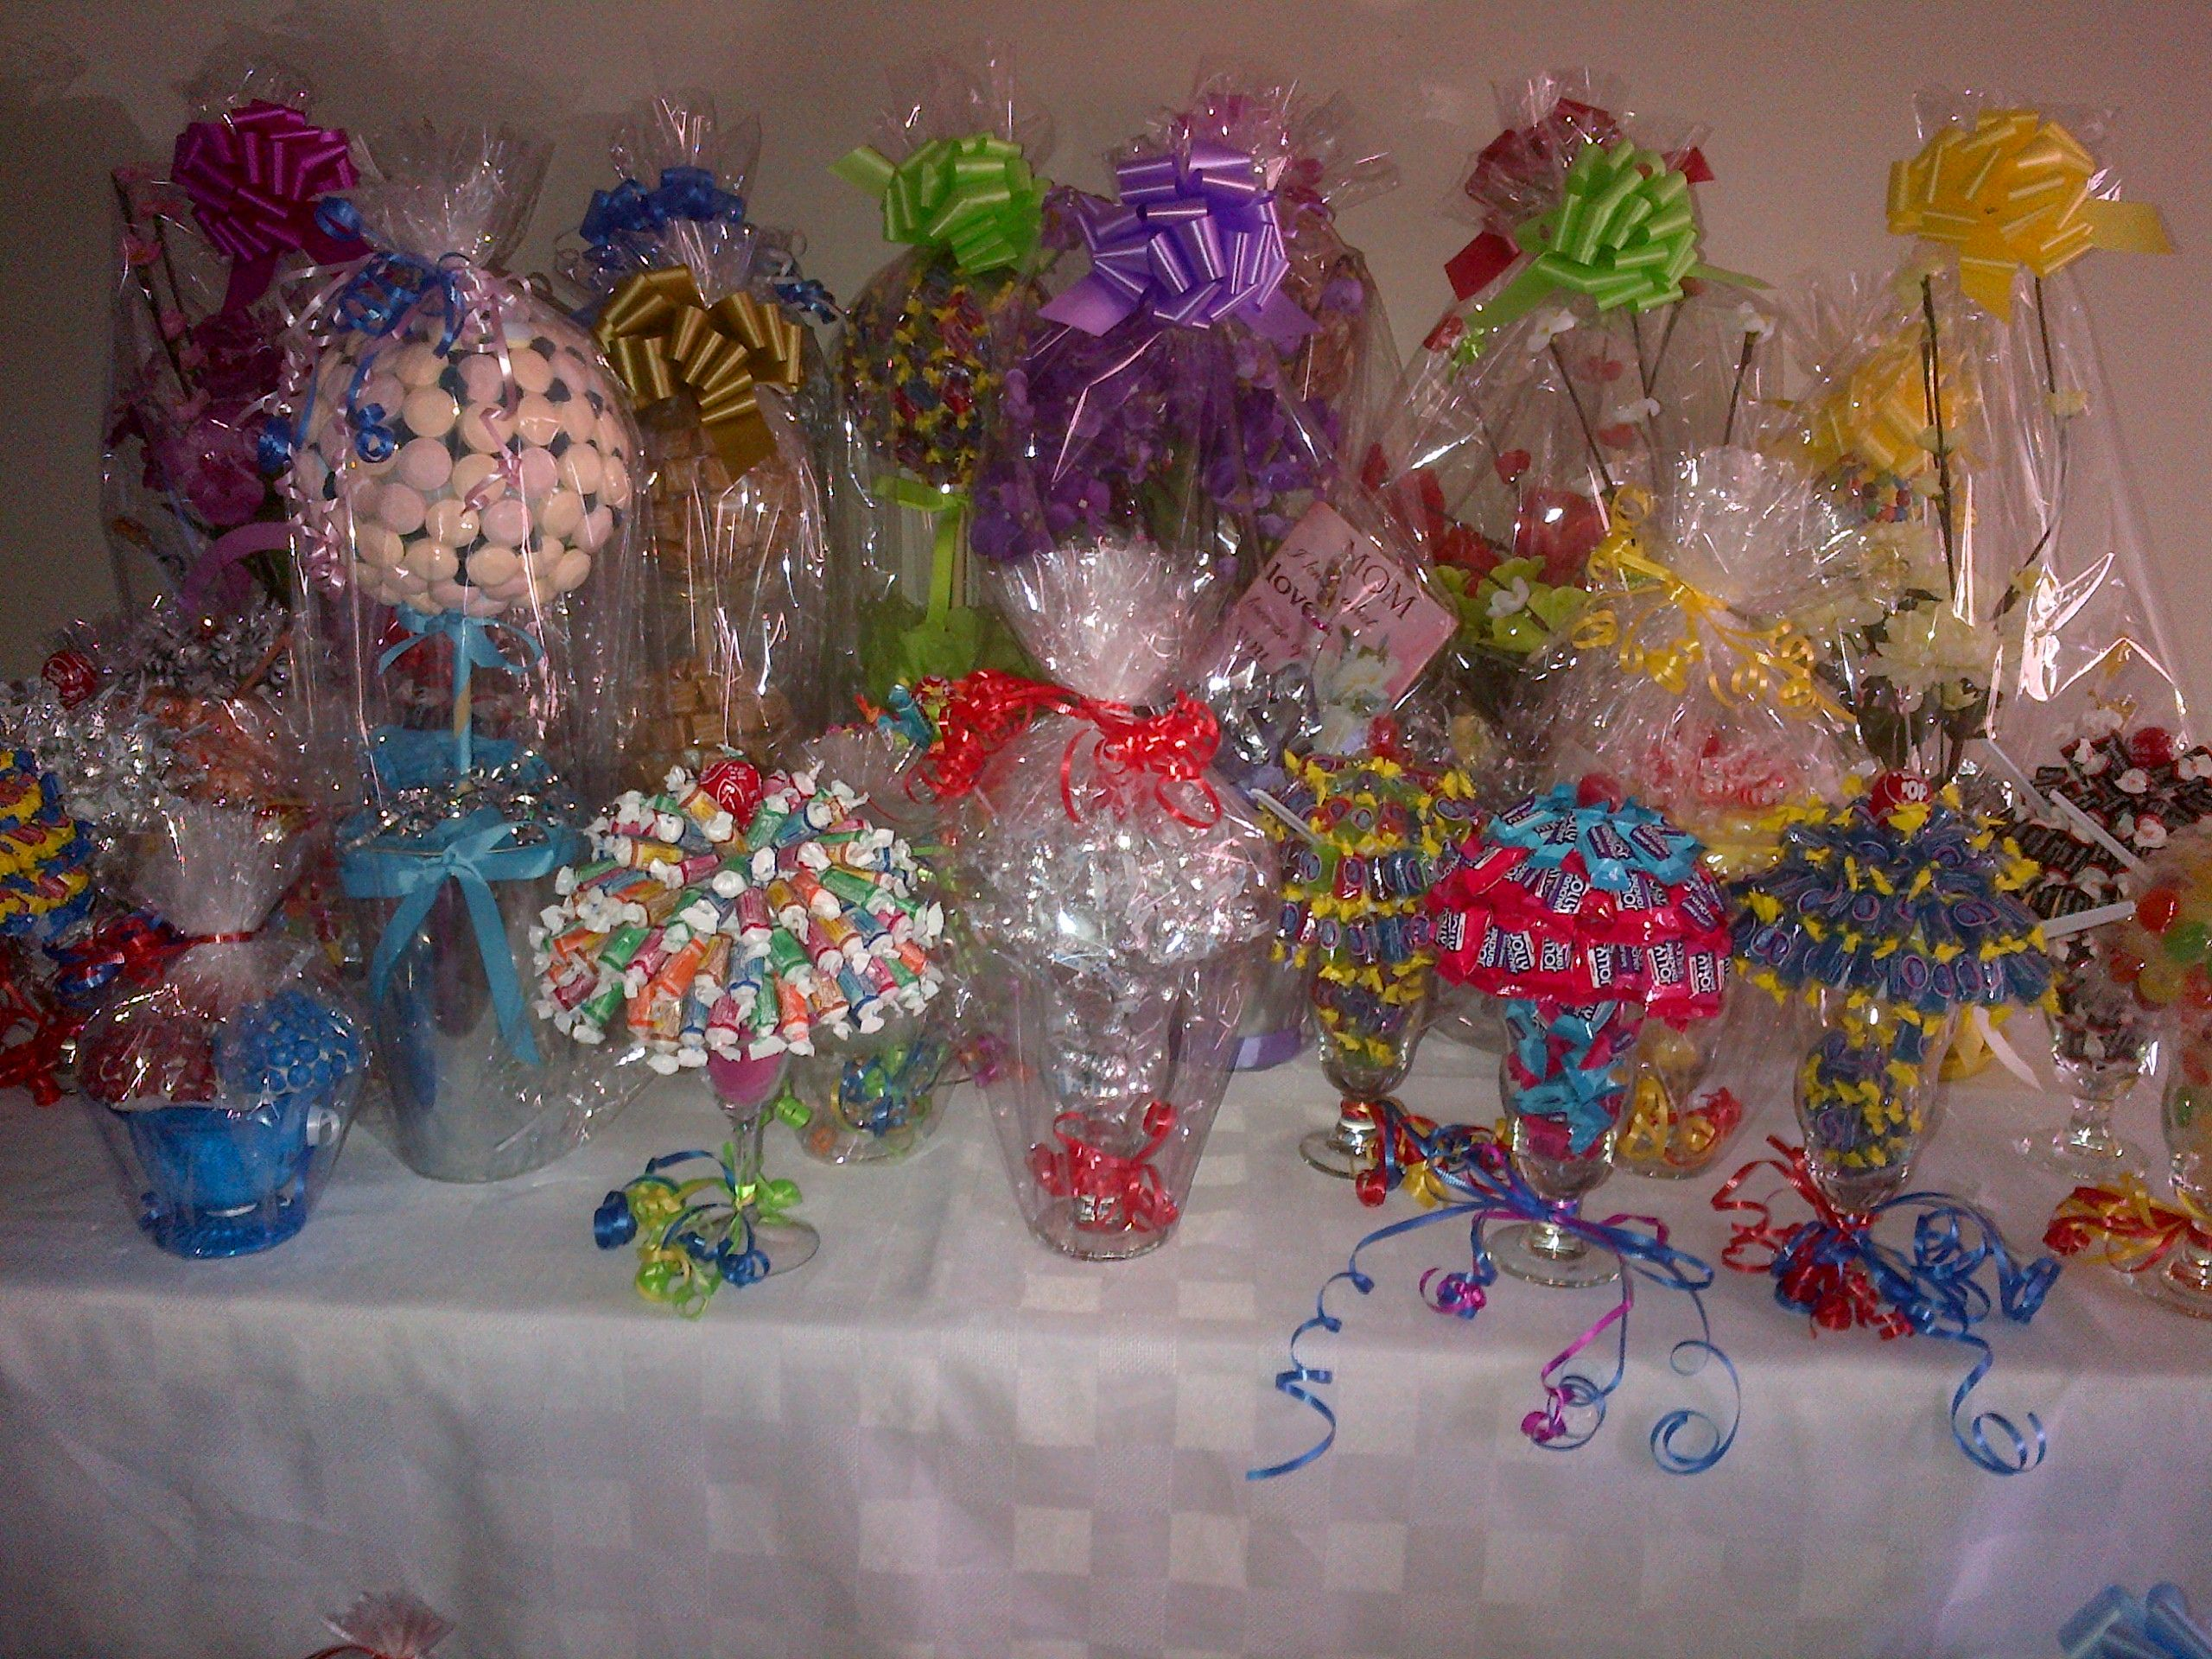 Candy Gifts by Lori Weiss